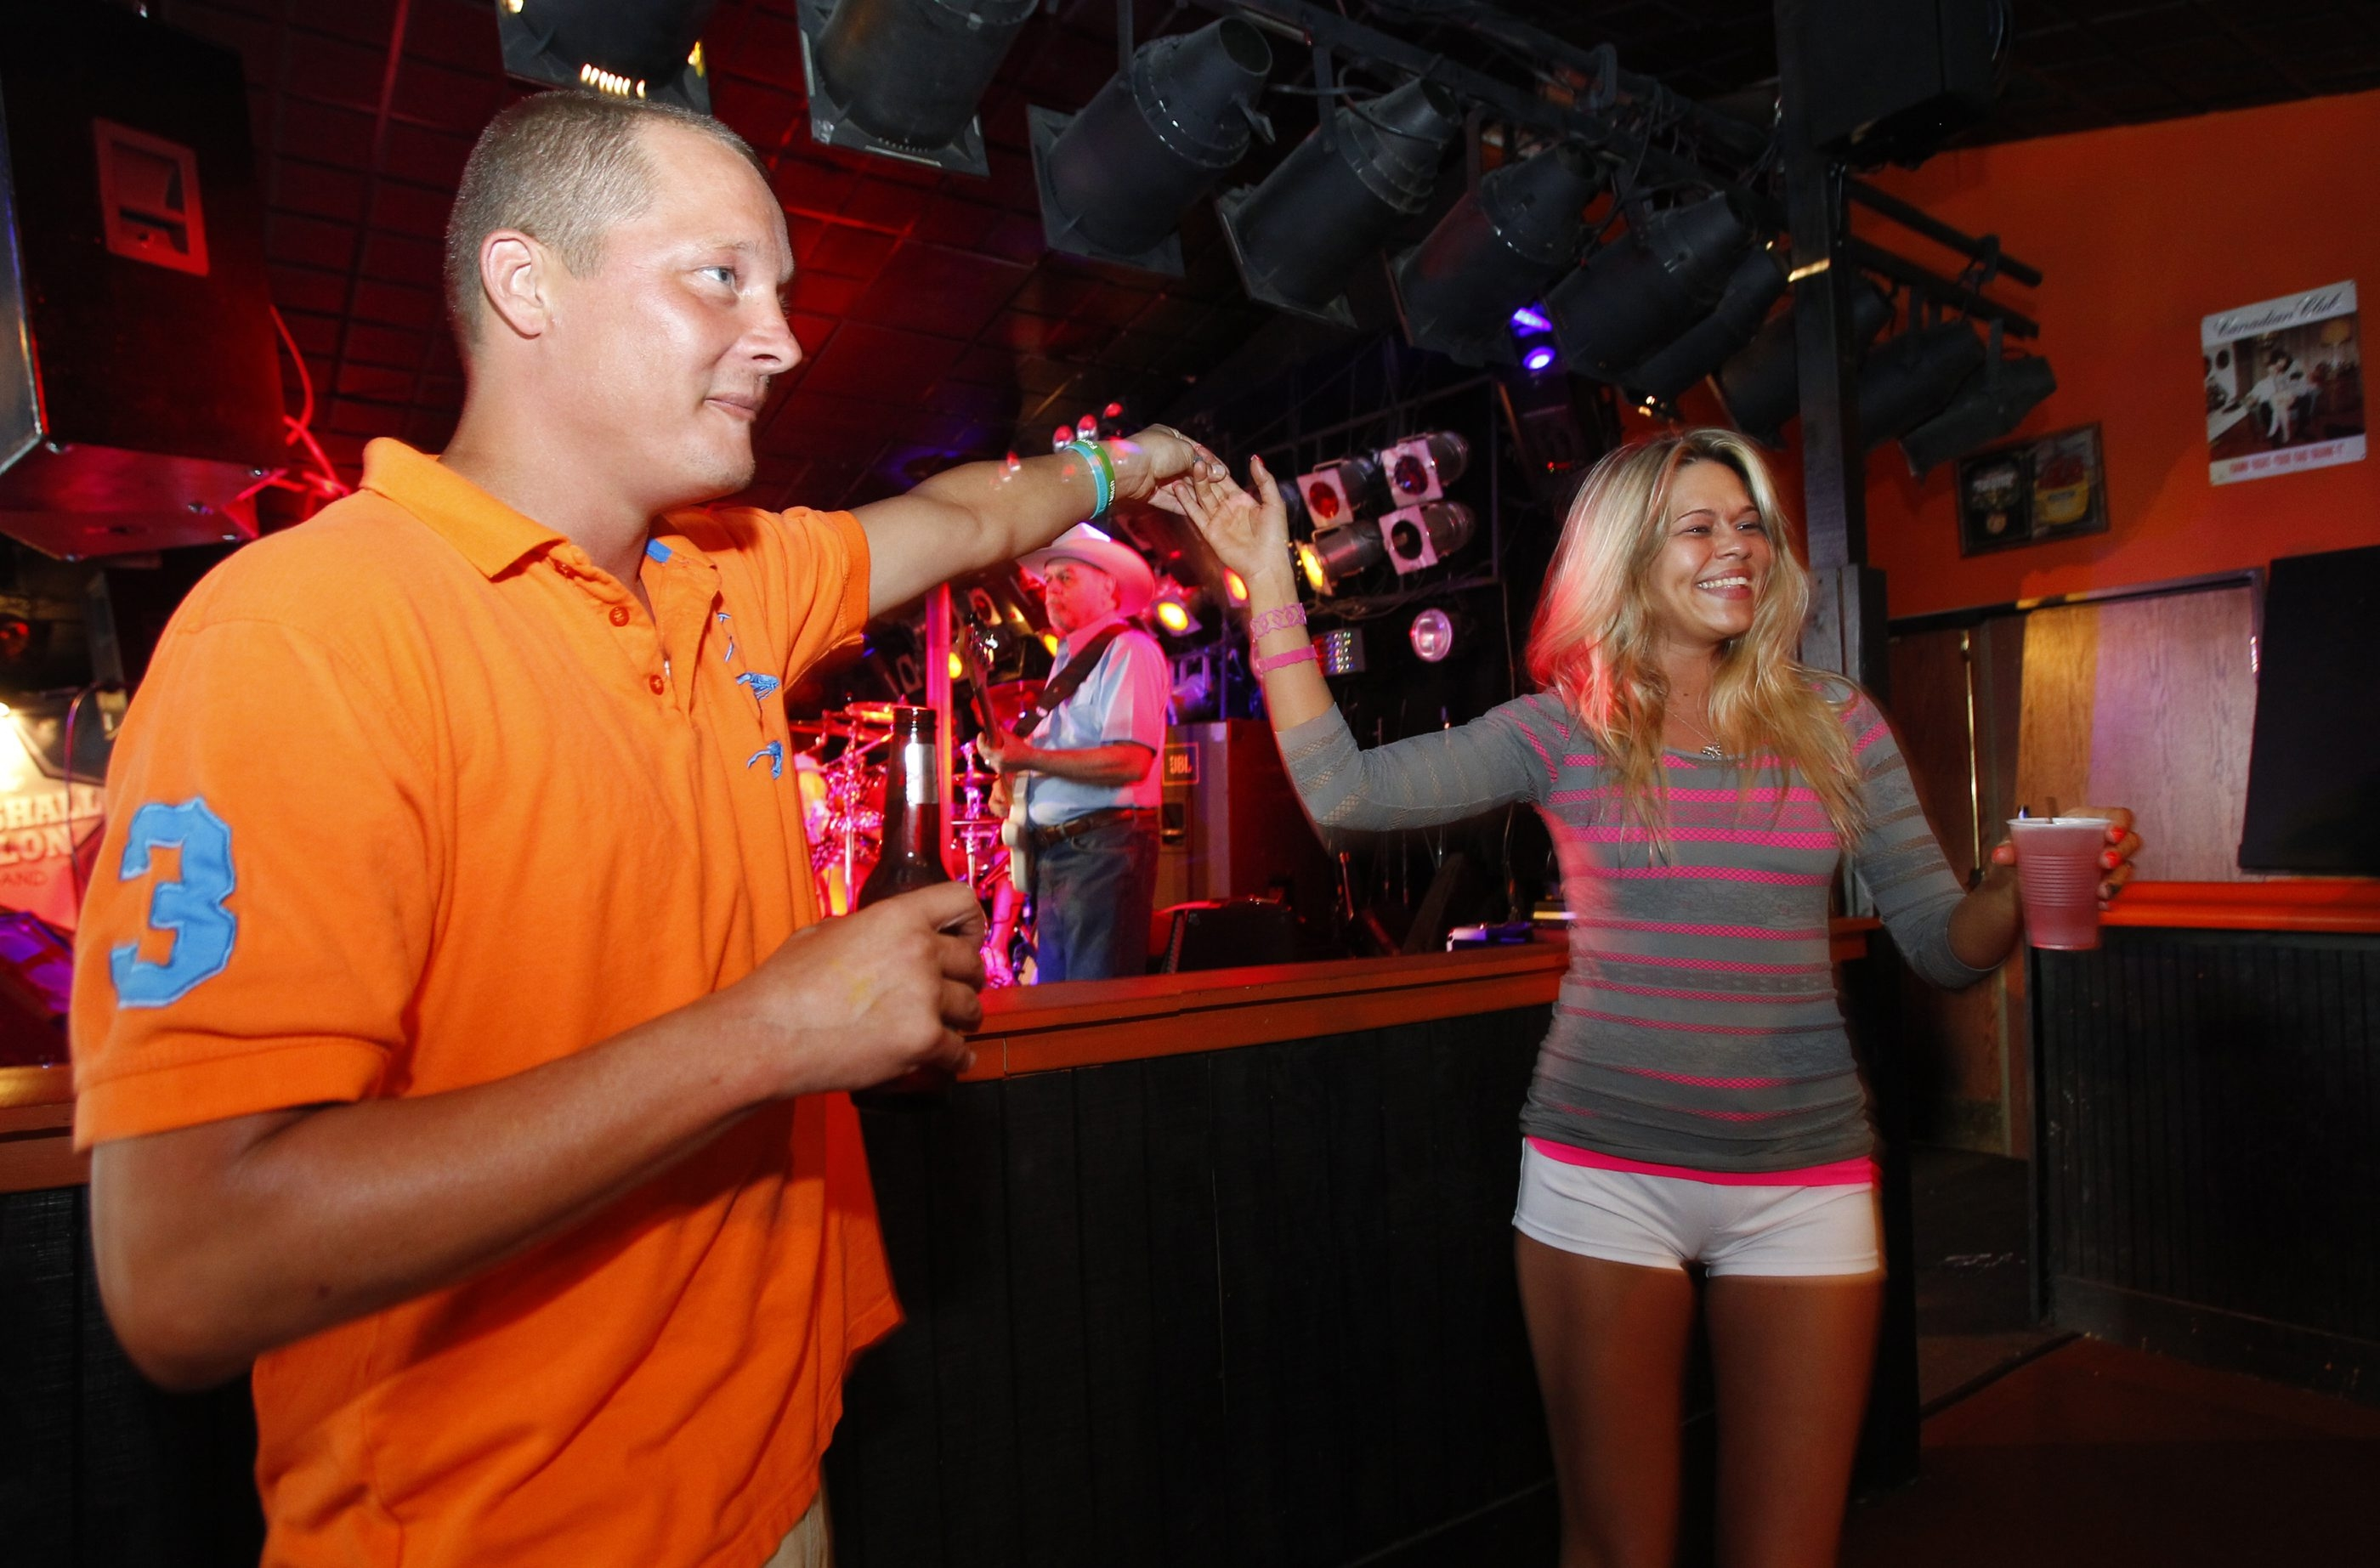 Eugene Kelly, and  Krystal Cummings, enjoy a drink and a dance while listening to the   Marshall Dillon band, at the Dog Pound Salon in West Seneca,NY, on Saturday, June 15, 2013..{Photo by Harry Scull Jr. / Buffalo News}